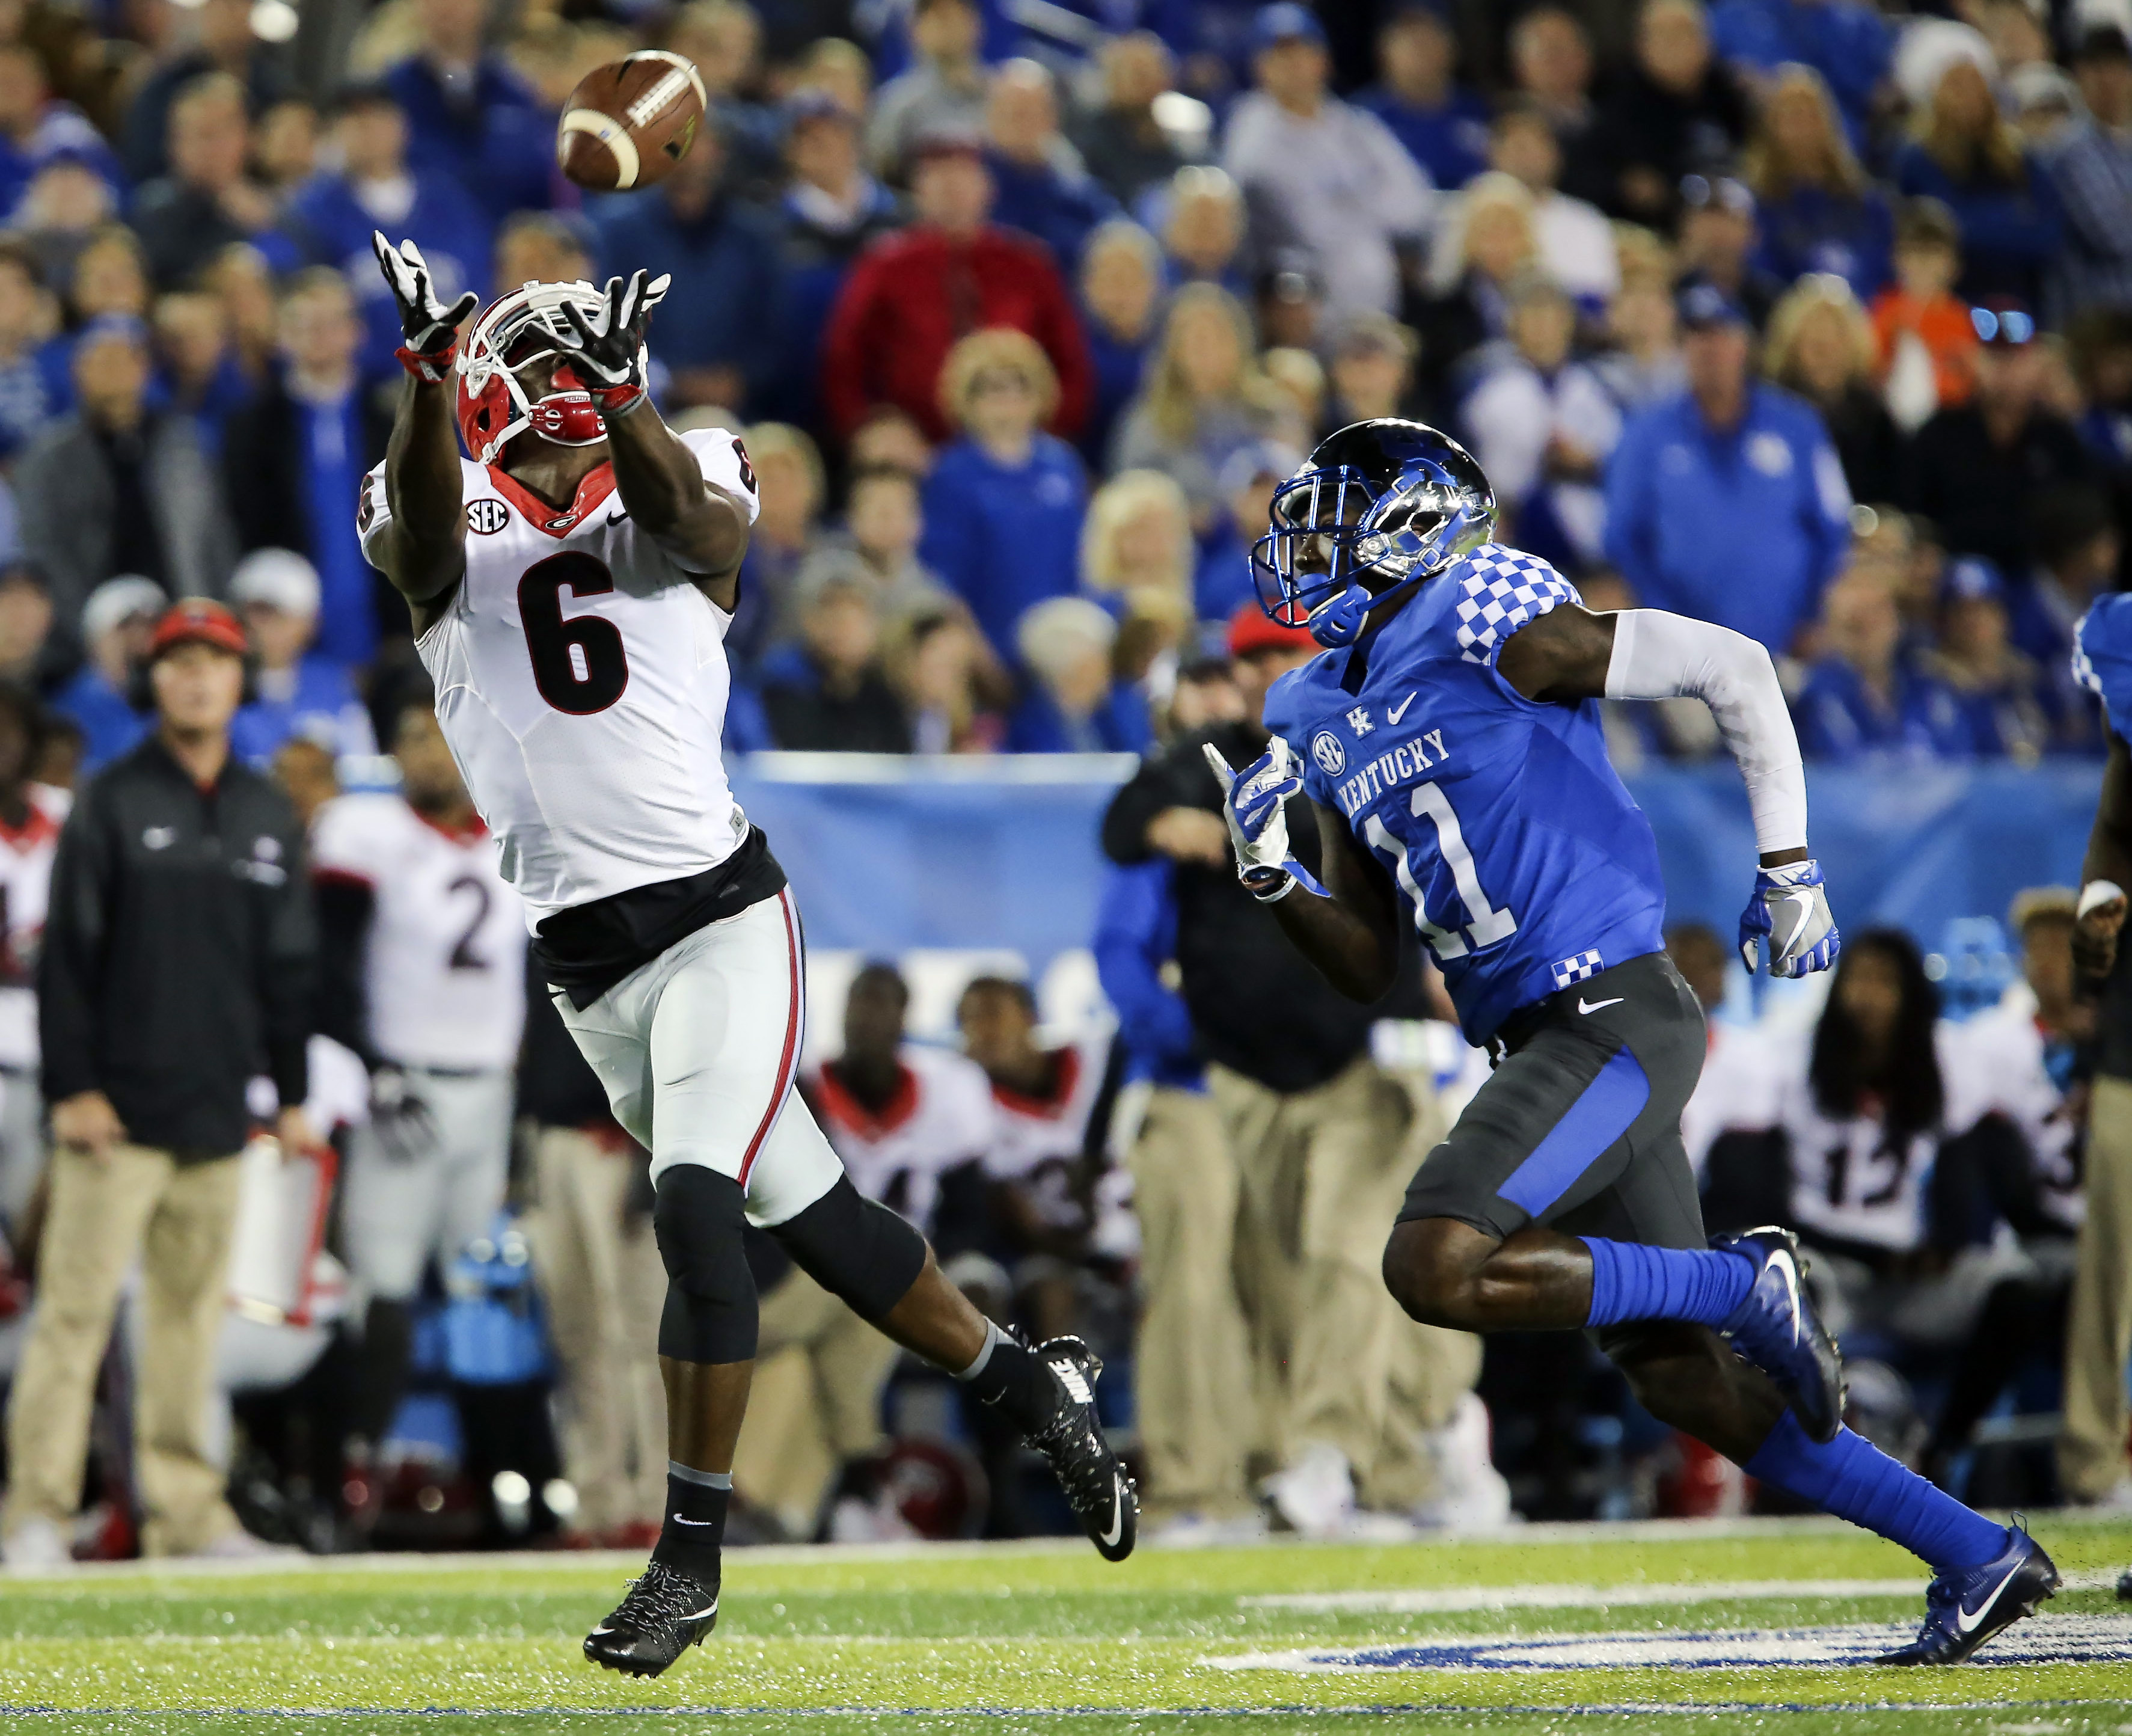 Georgia wide receiver Javon Wims (6) catches a pass in front of Kentucky cornerback J.D. Harmon for a first down in the first half of an NCAA college football game Saturday, Nov. 5, 2016, in Lexington, Ky. (AP Photo/David Stephenson)